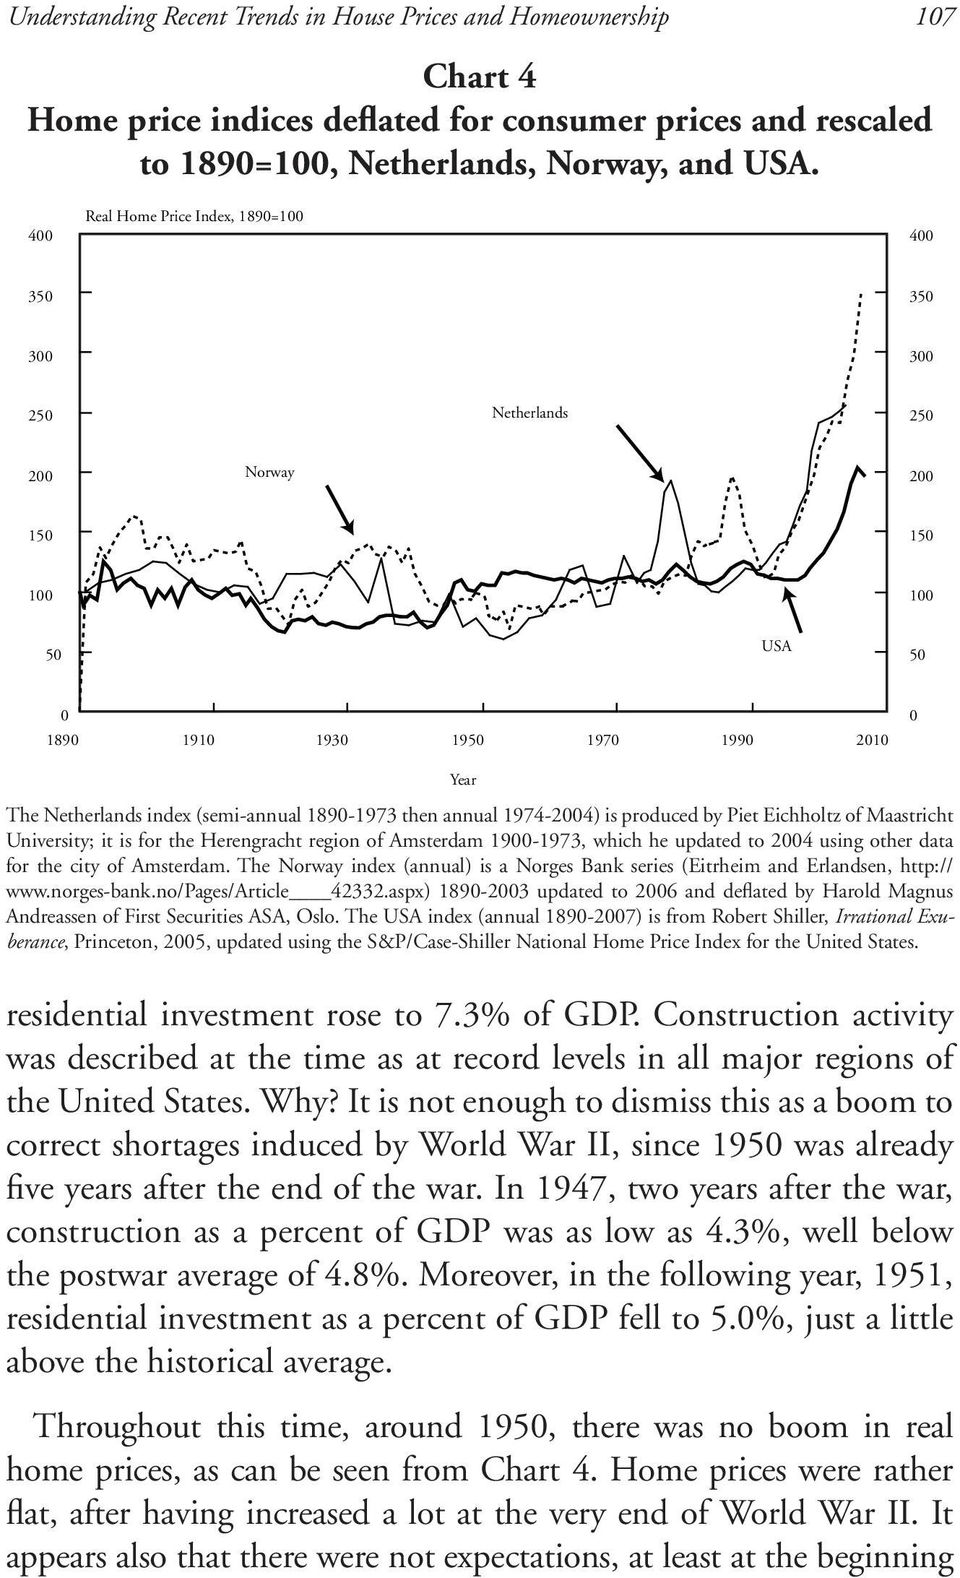 1890-1973 then annual 1974-2004) is produced by Piet Eichholtz of Maastricht University; it is for the Herengracht region of Amsterdam 1900-1973, which he updated to 2004 using other data for the